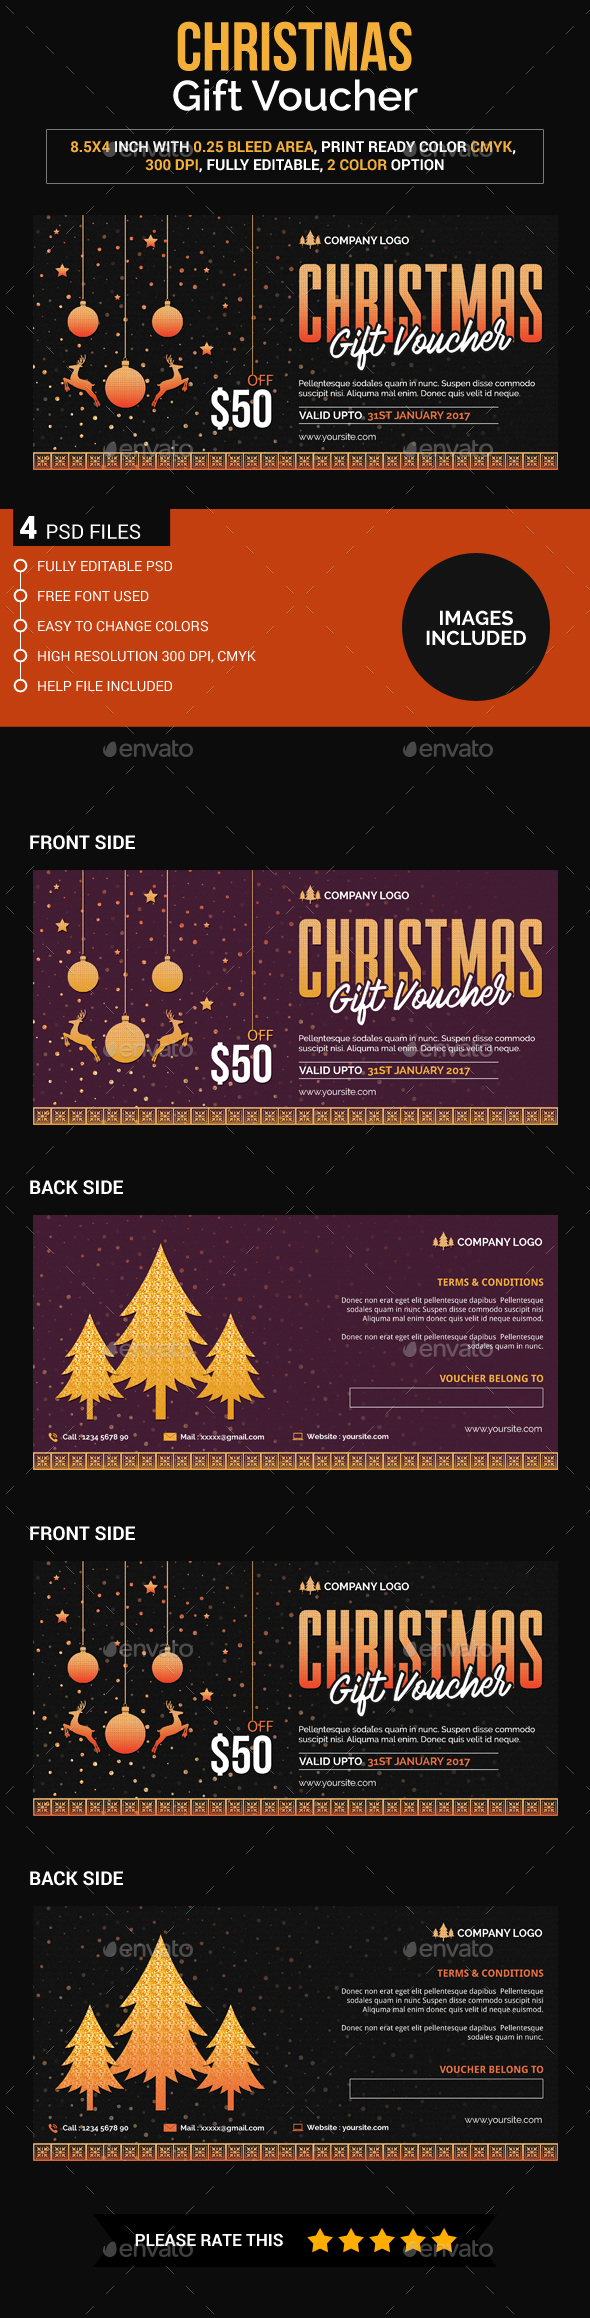 Christmas gift voucher - Loyalty Cards Cards & Invites